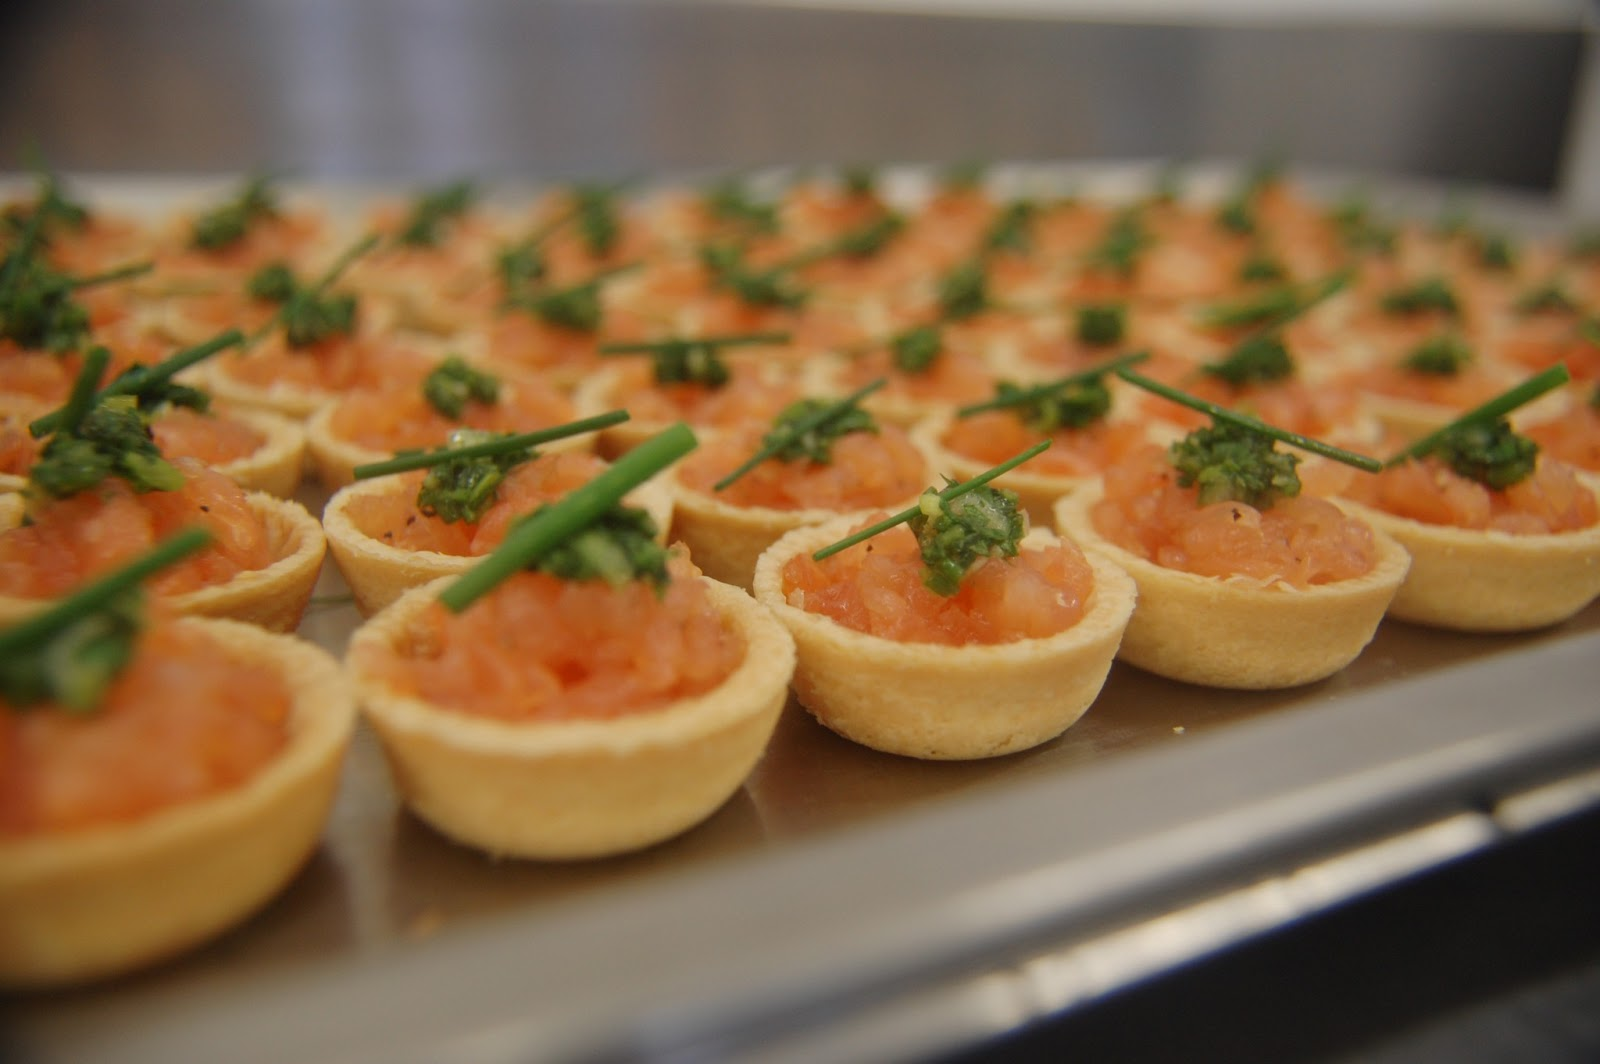 Weddings at powerscourt house canapes and starters for Canape suppliers